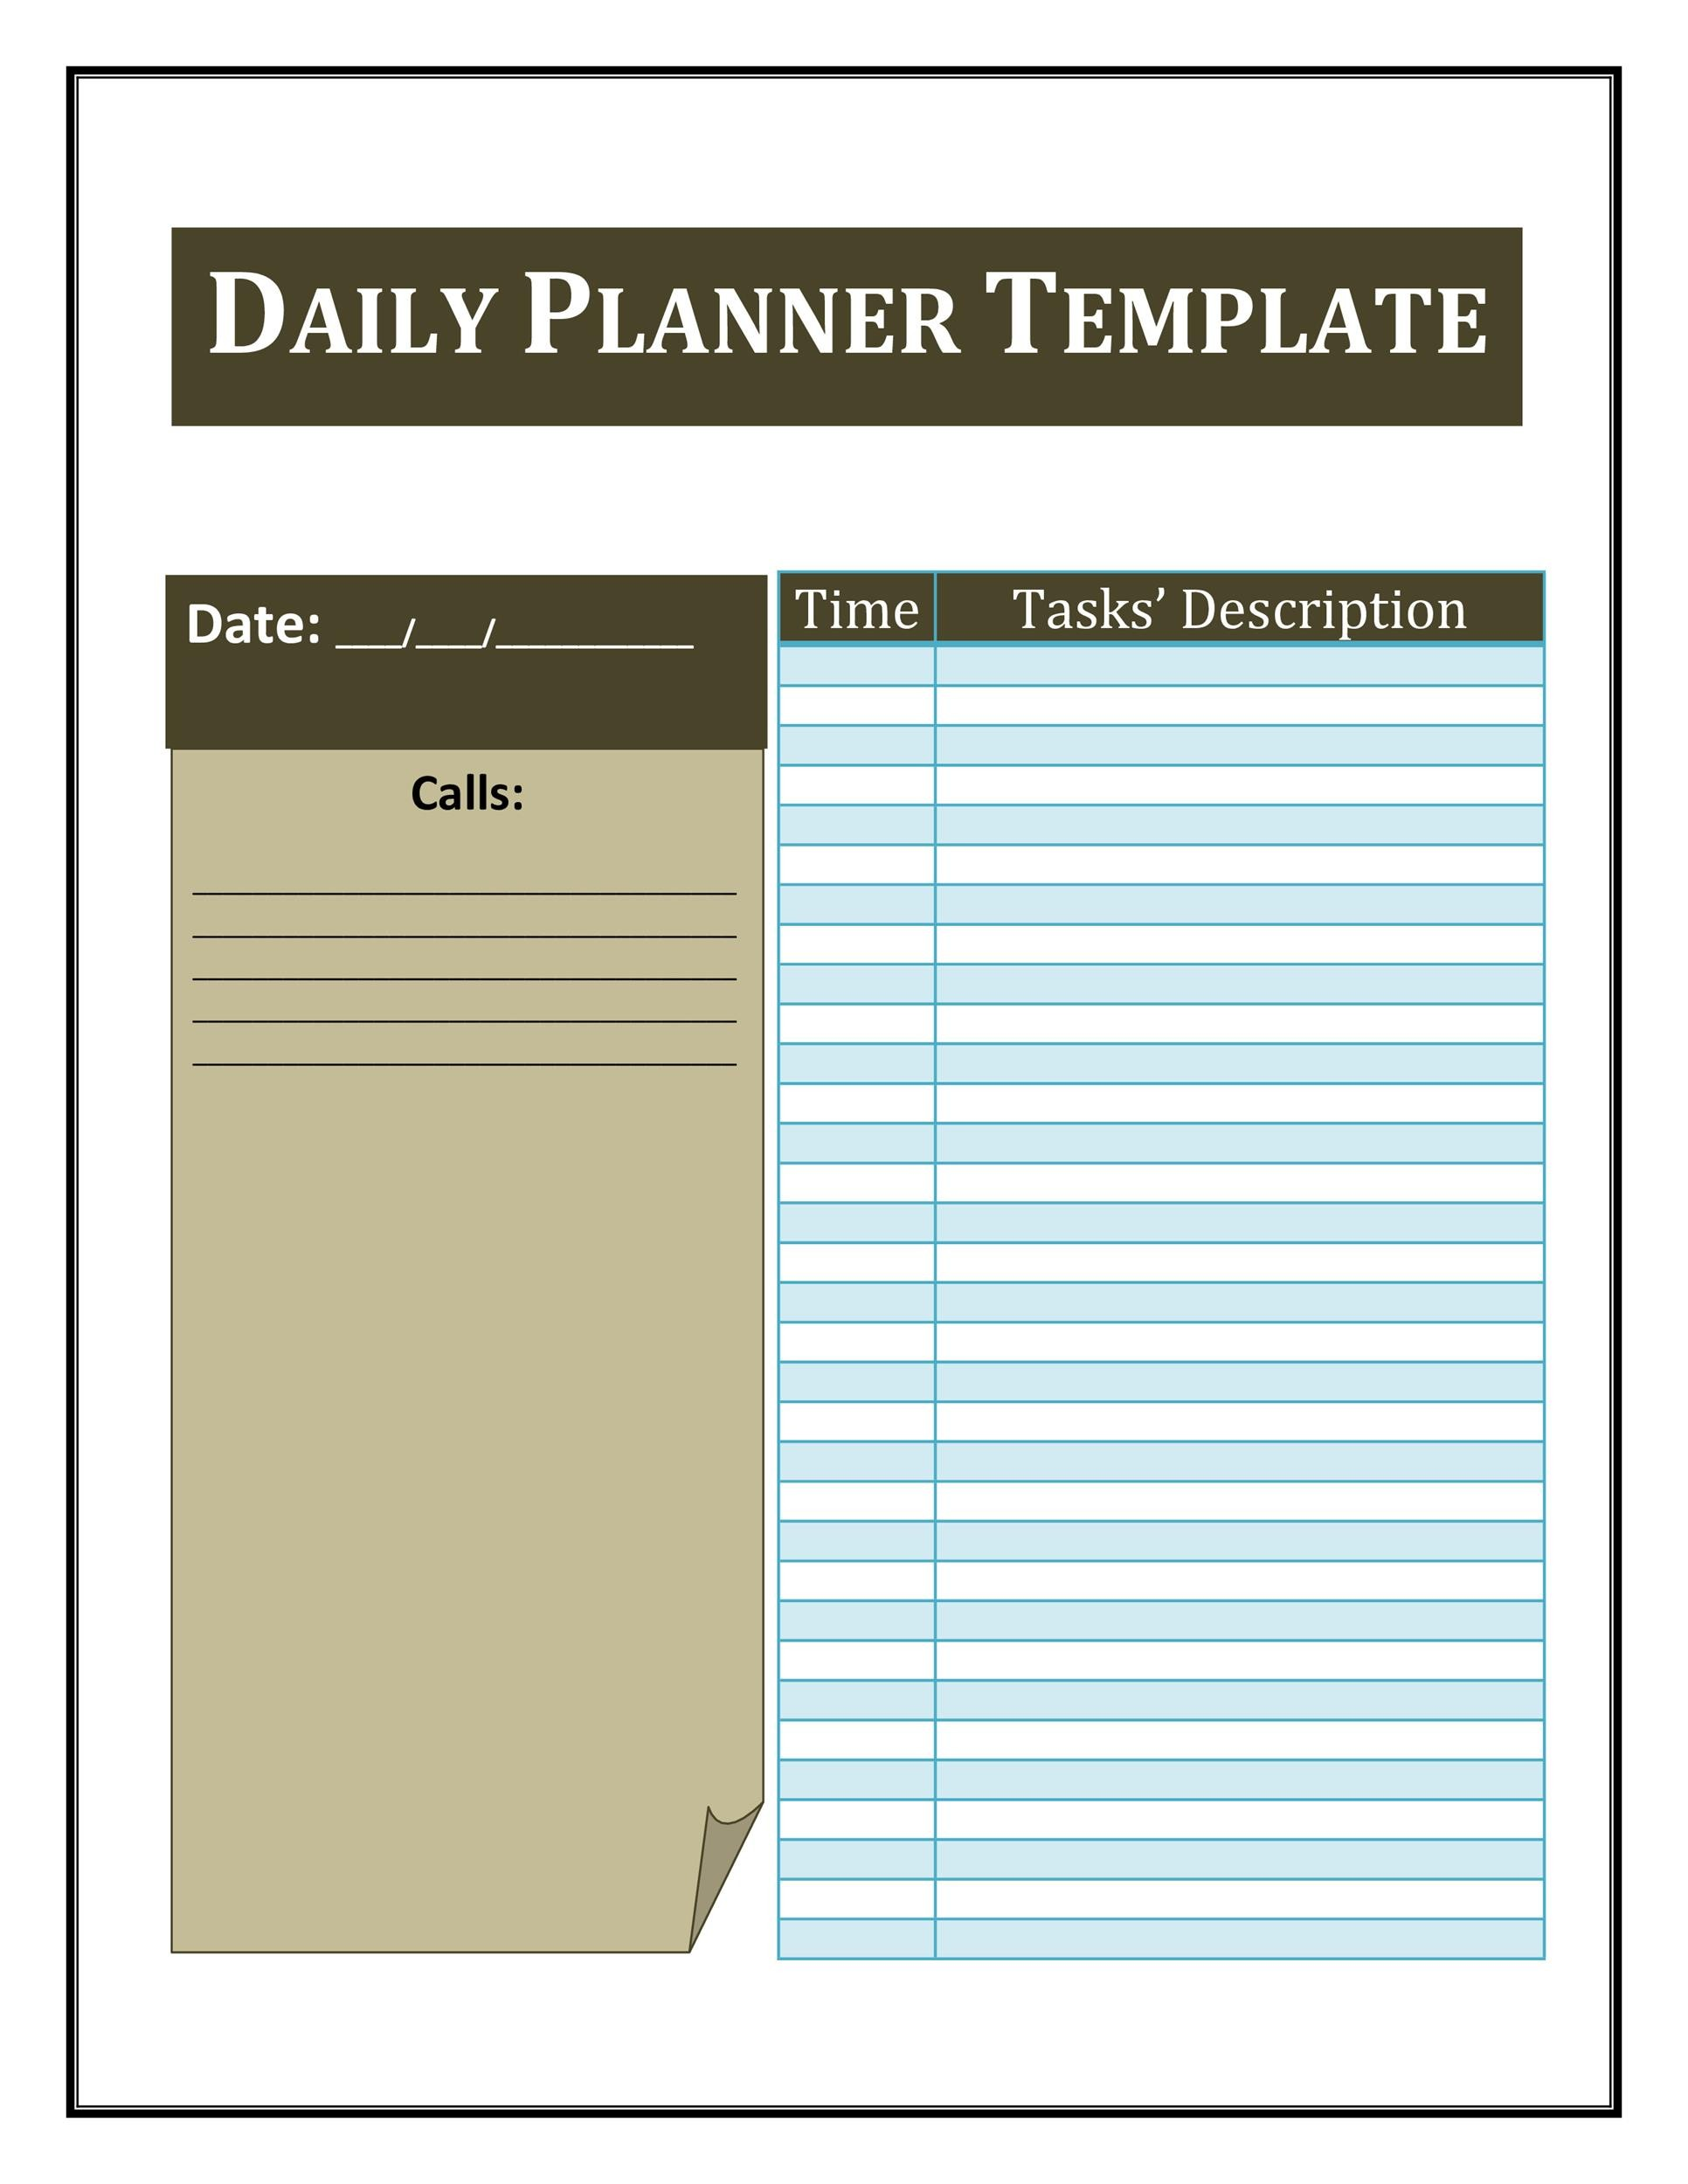 Printable Daily Planner Templates FREE Template Lab - Daily planner template word